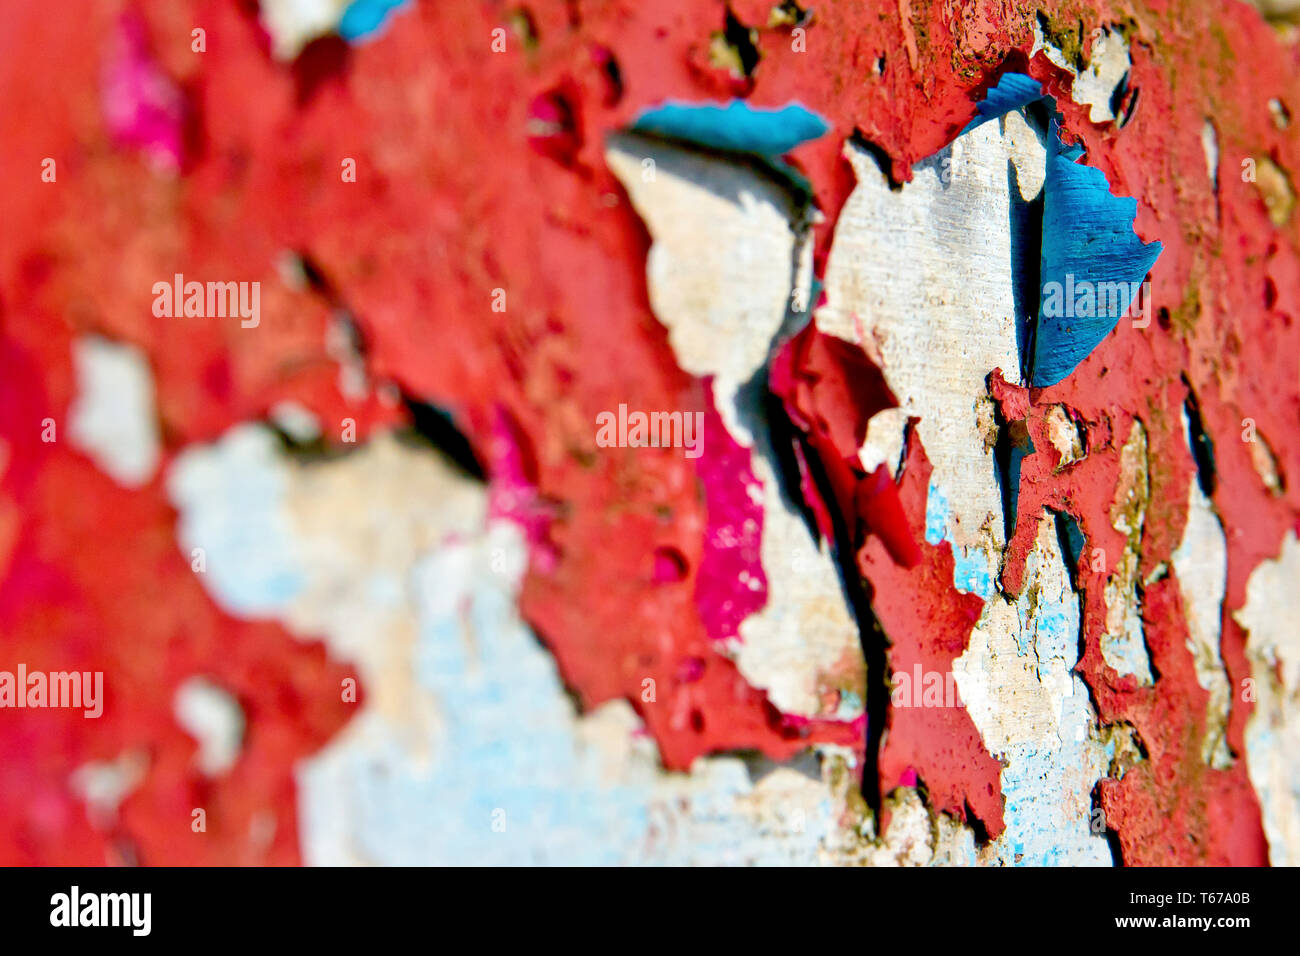 Red paint with a blue undercoat peeling away from a white background. - Stock Image